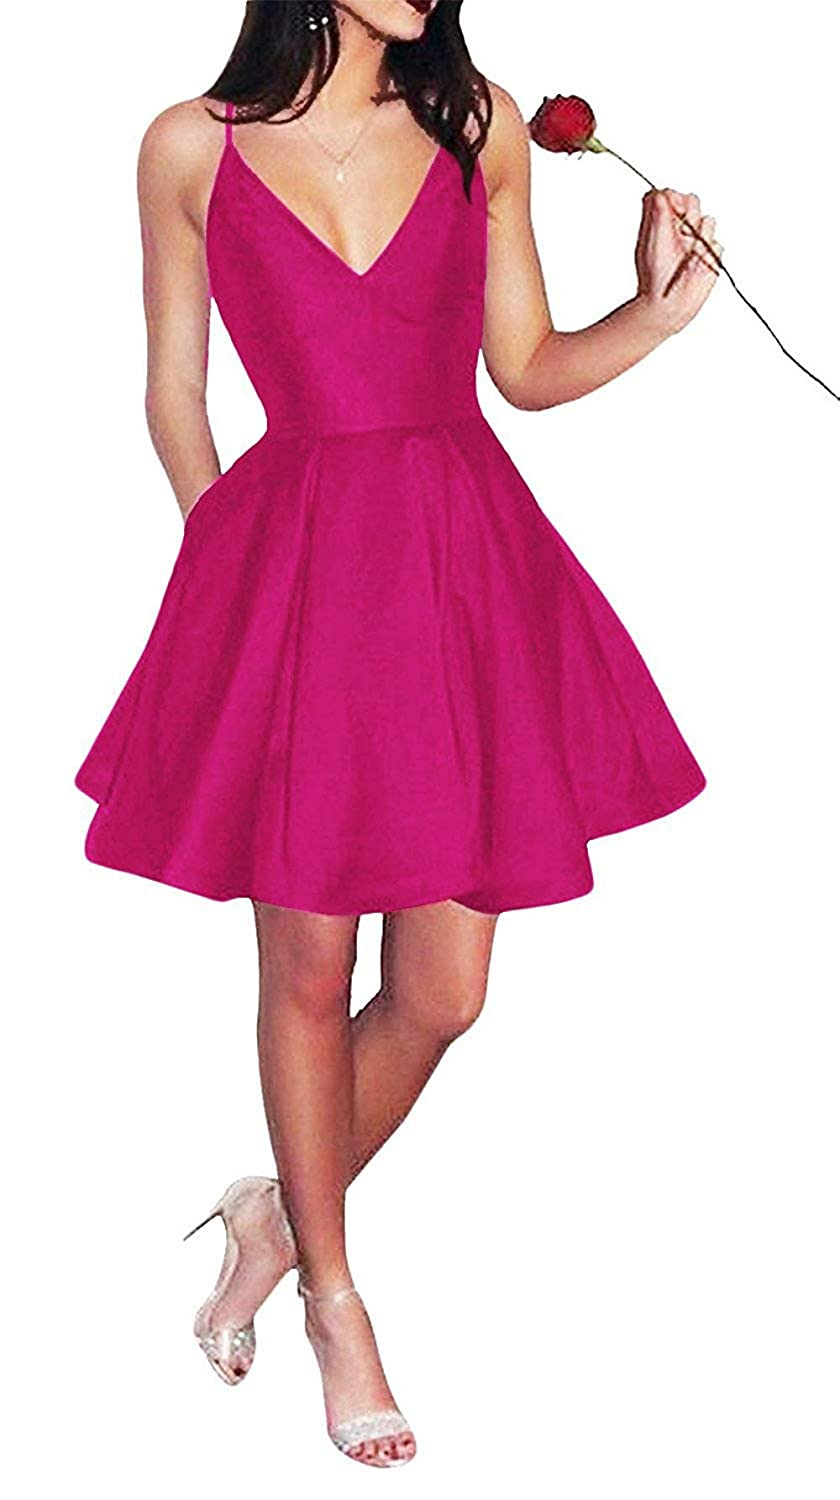 Fuchsia SkirtsFirst Short Spaghetti Straps VNeck Aline Satin Homecoming Dress with Pockets